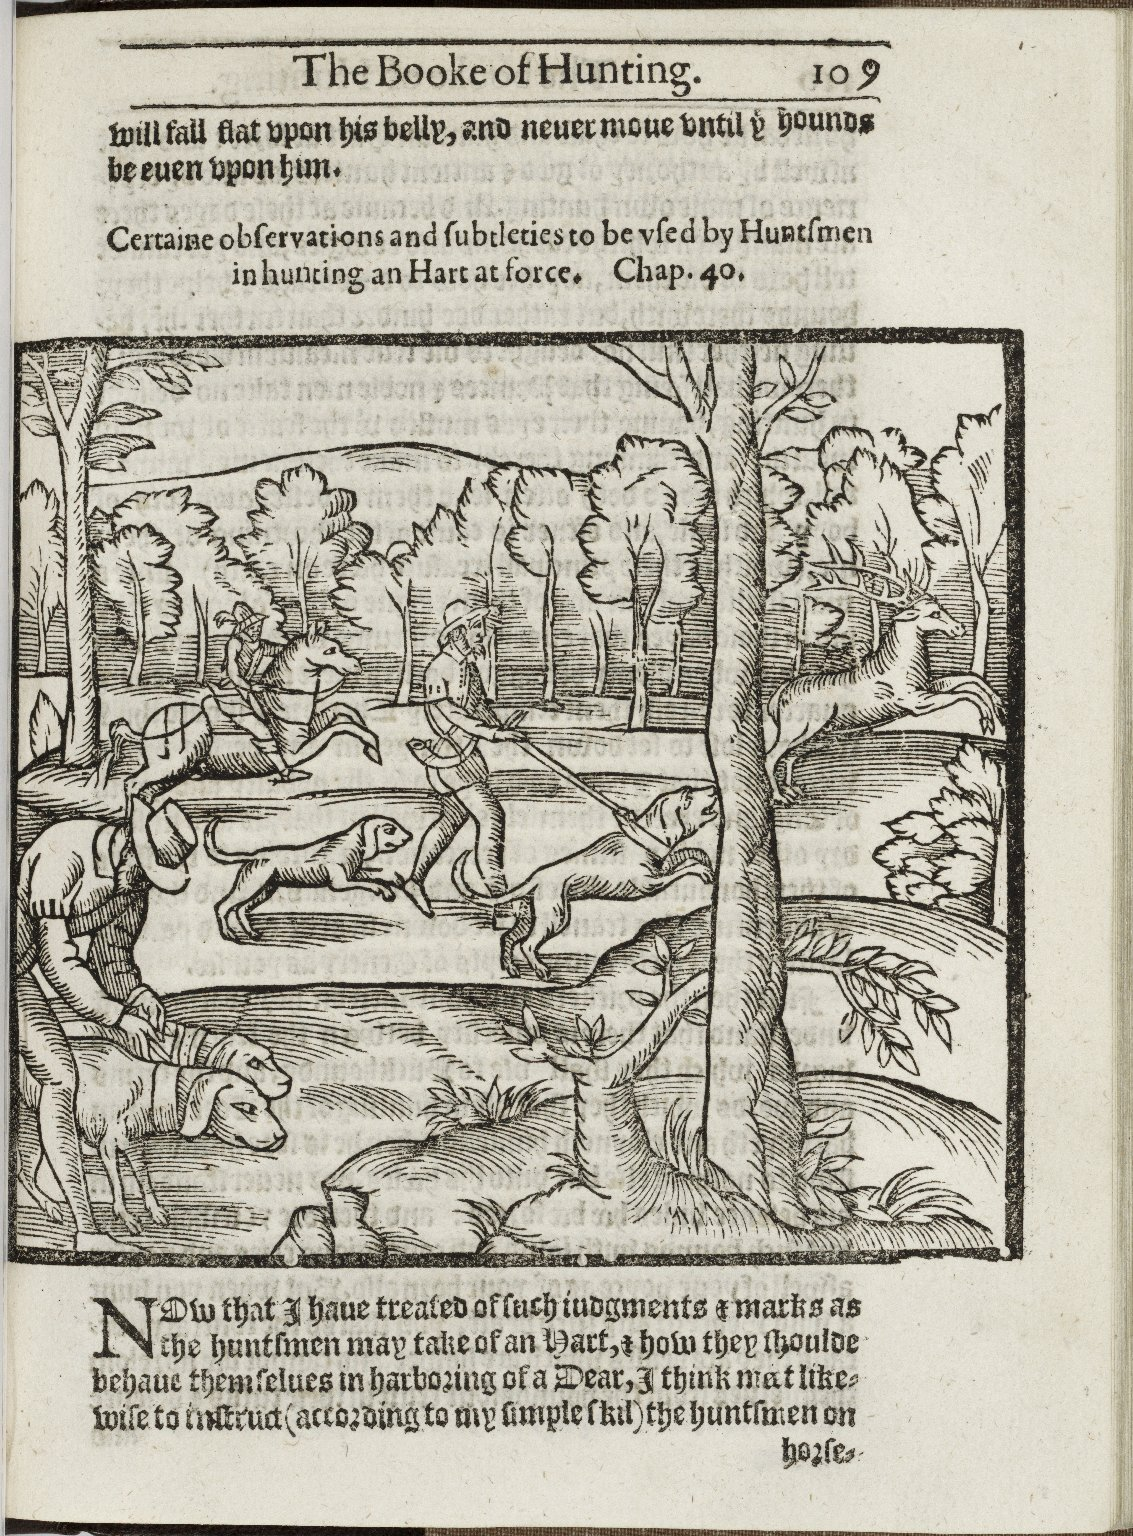 From The Noble Art of Venerie by George Gascoigne, 1611. Image courtesy of LUNA at the Folger Shakespeare Library.